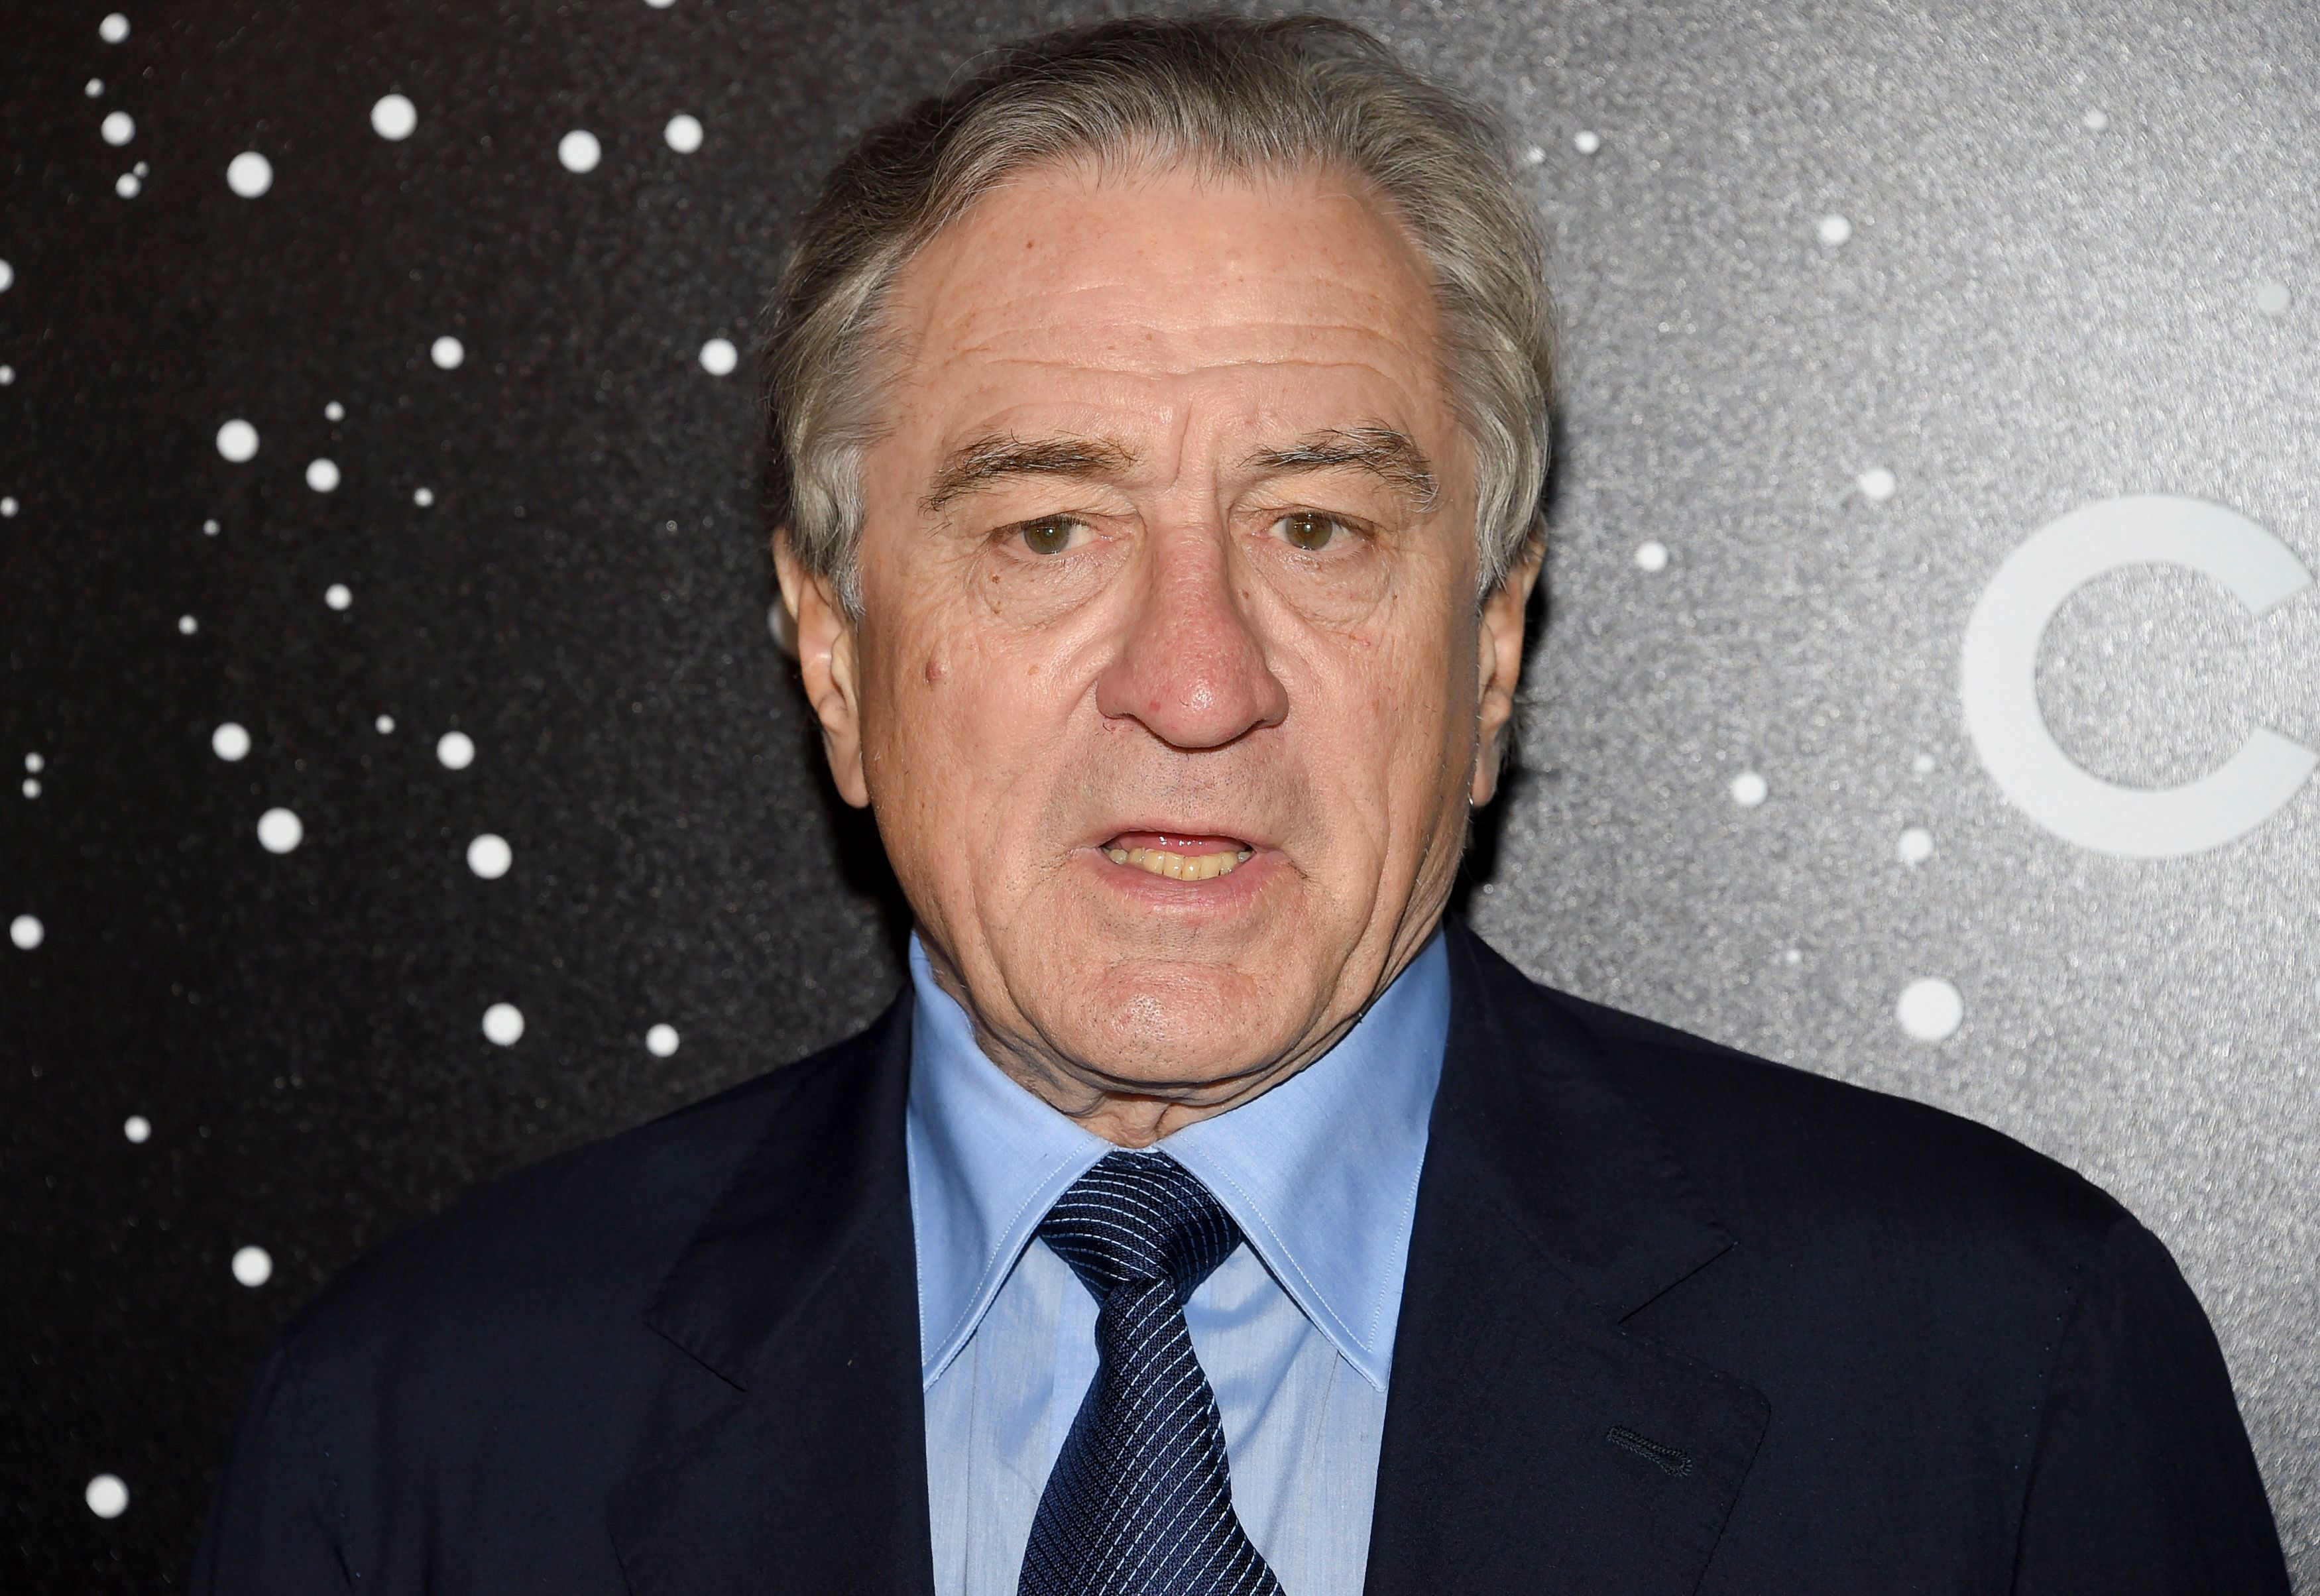 Robert De Niro On Trump: He's 'A Real Racist' And White